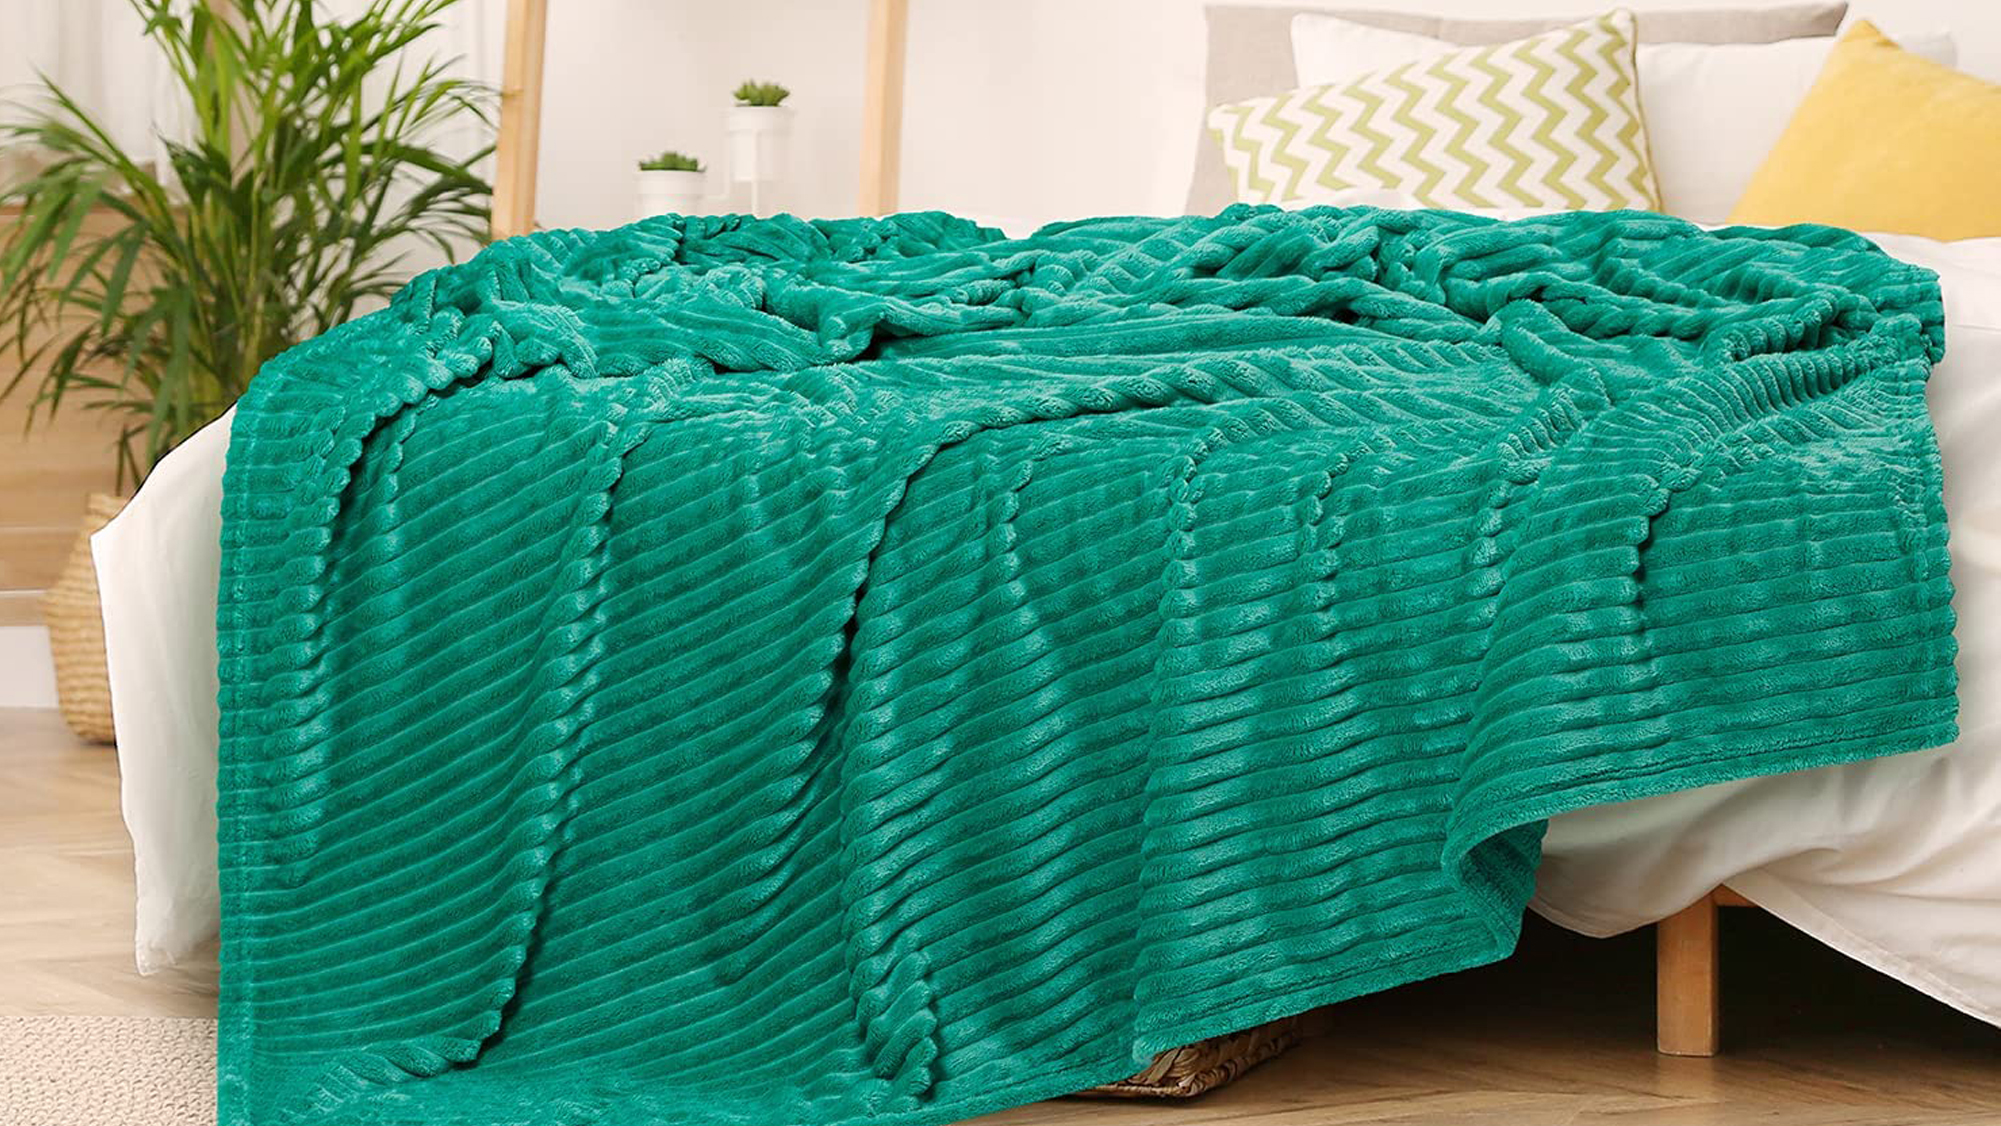 GREEN ORANGE Throw Blanket for Couch